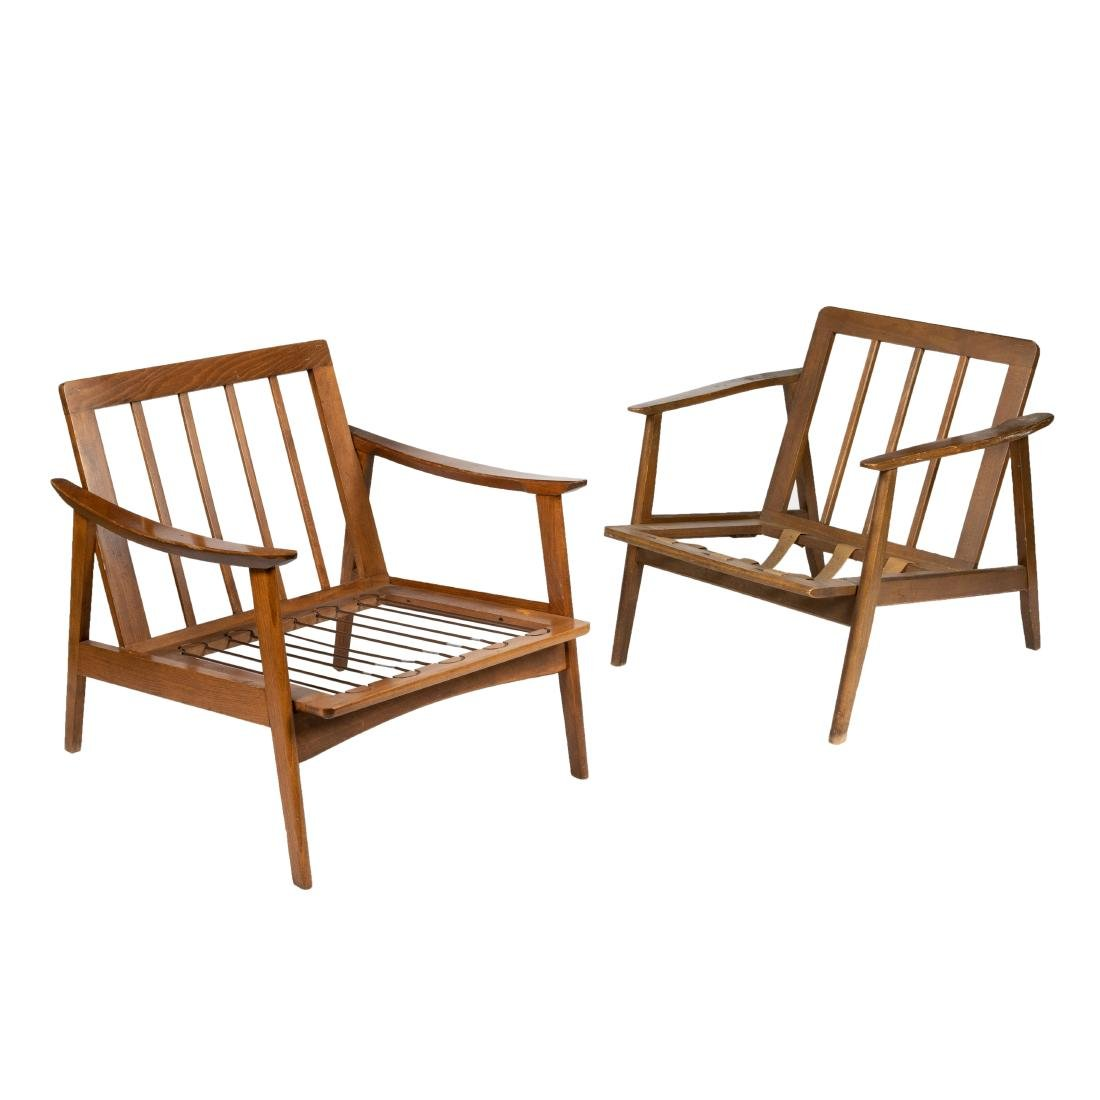 Two Paddle Arm Lounge Chairs